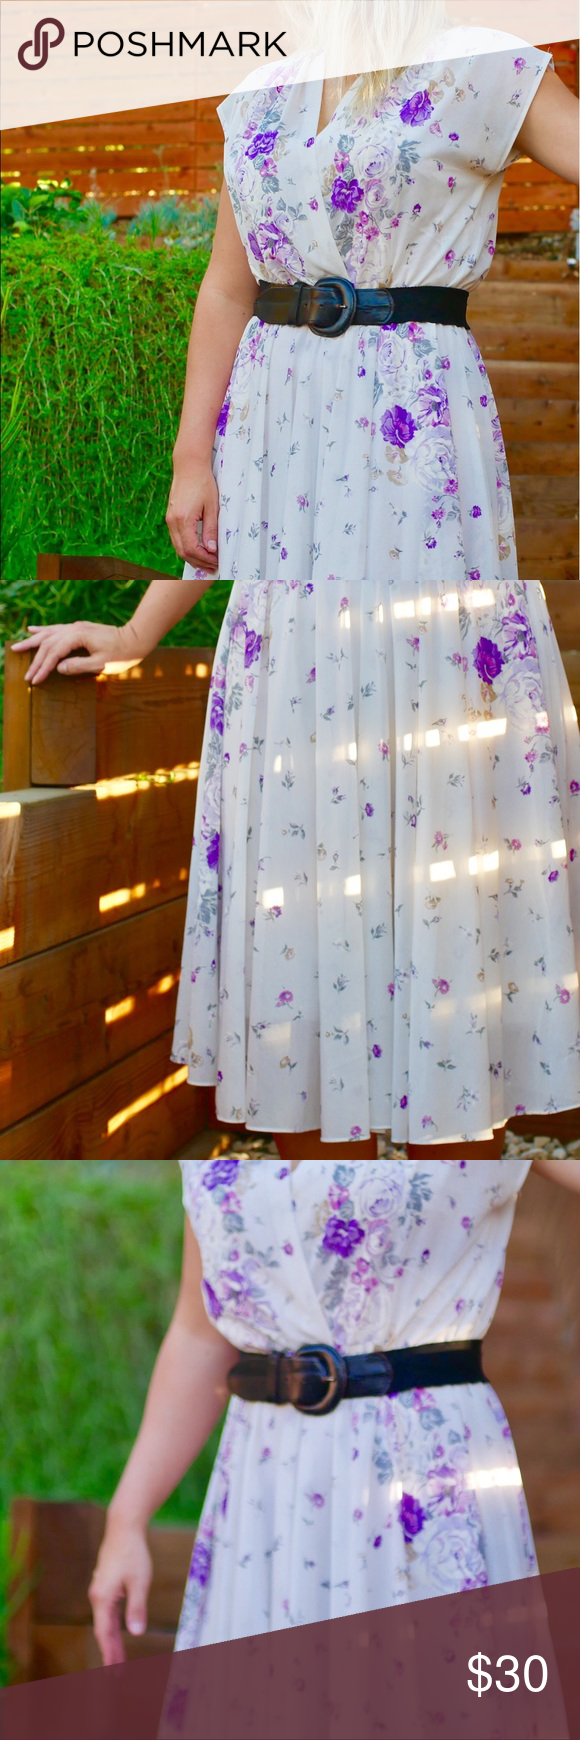 Vintage White Sheer Dress With Purple Flowers My Posh Closet